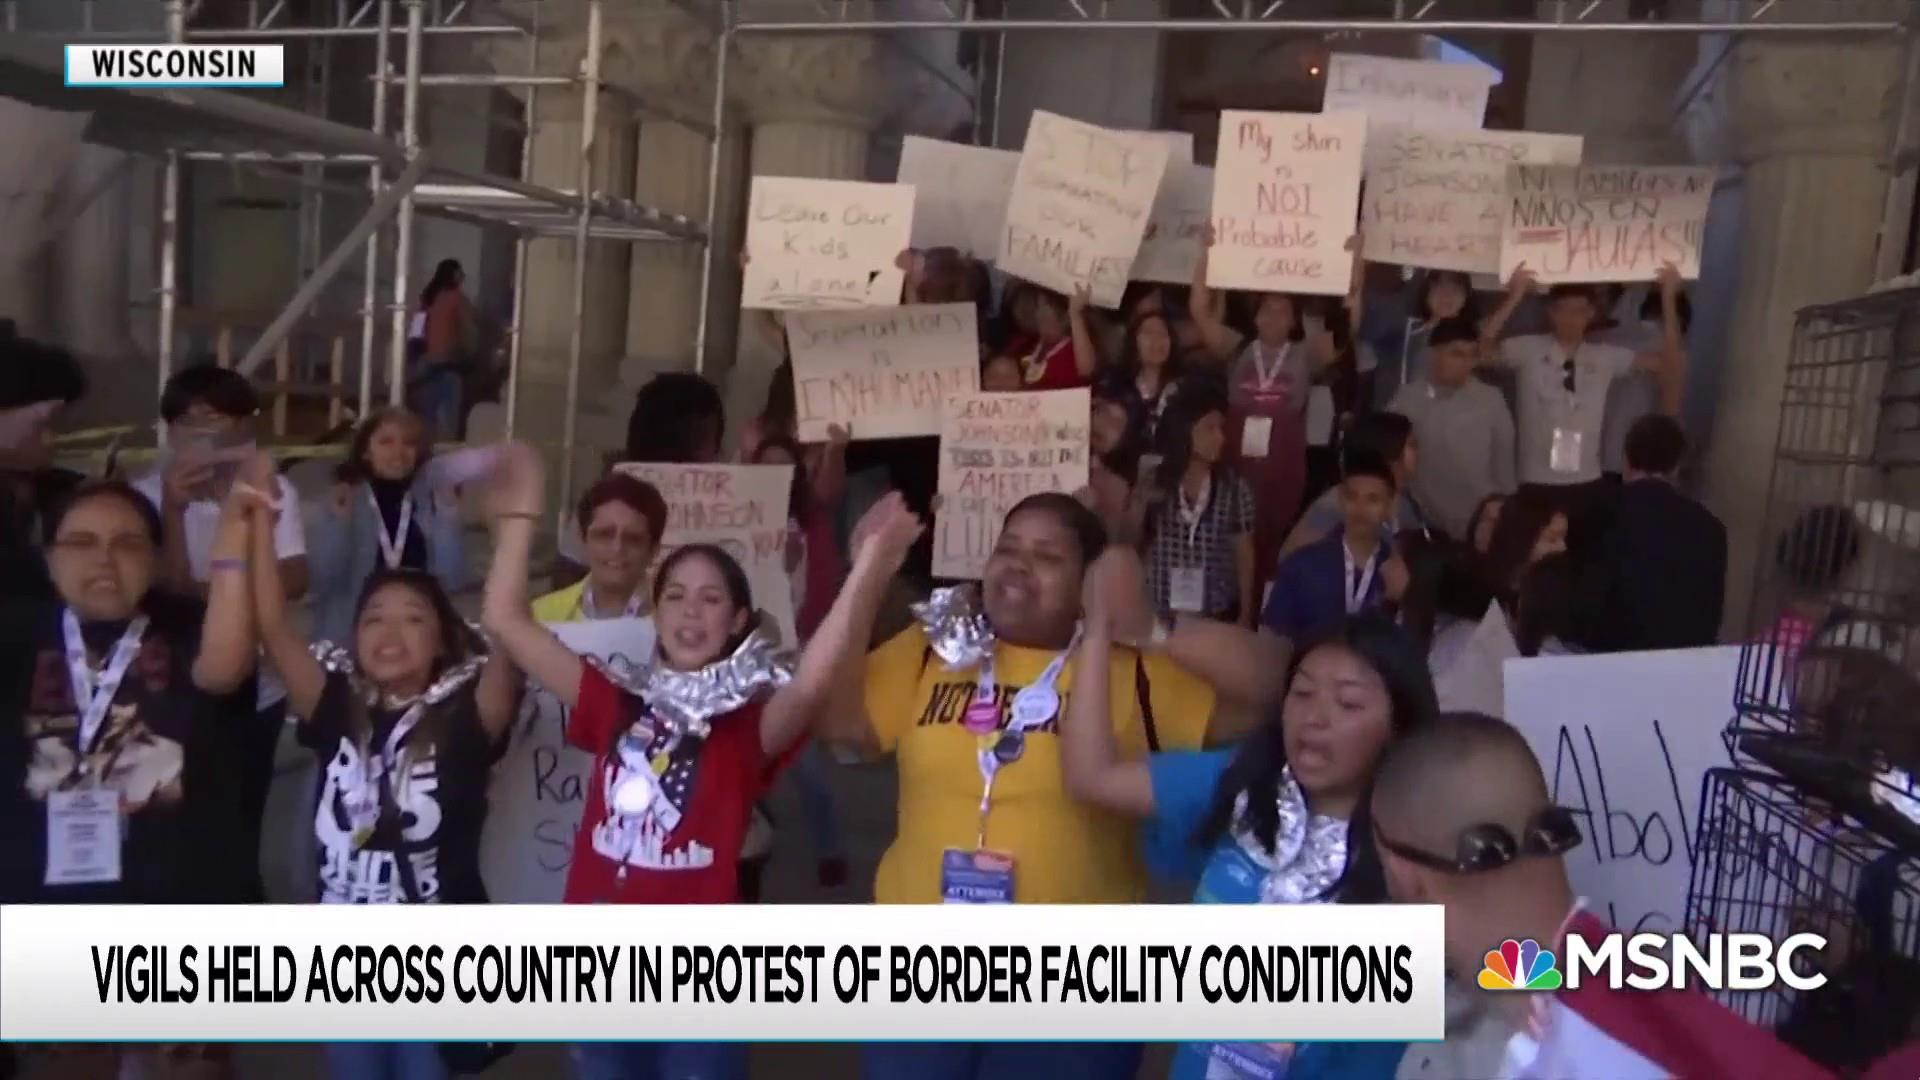 Pence sees border horror first hand as protests spread nationwide